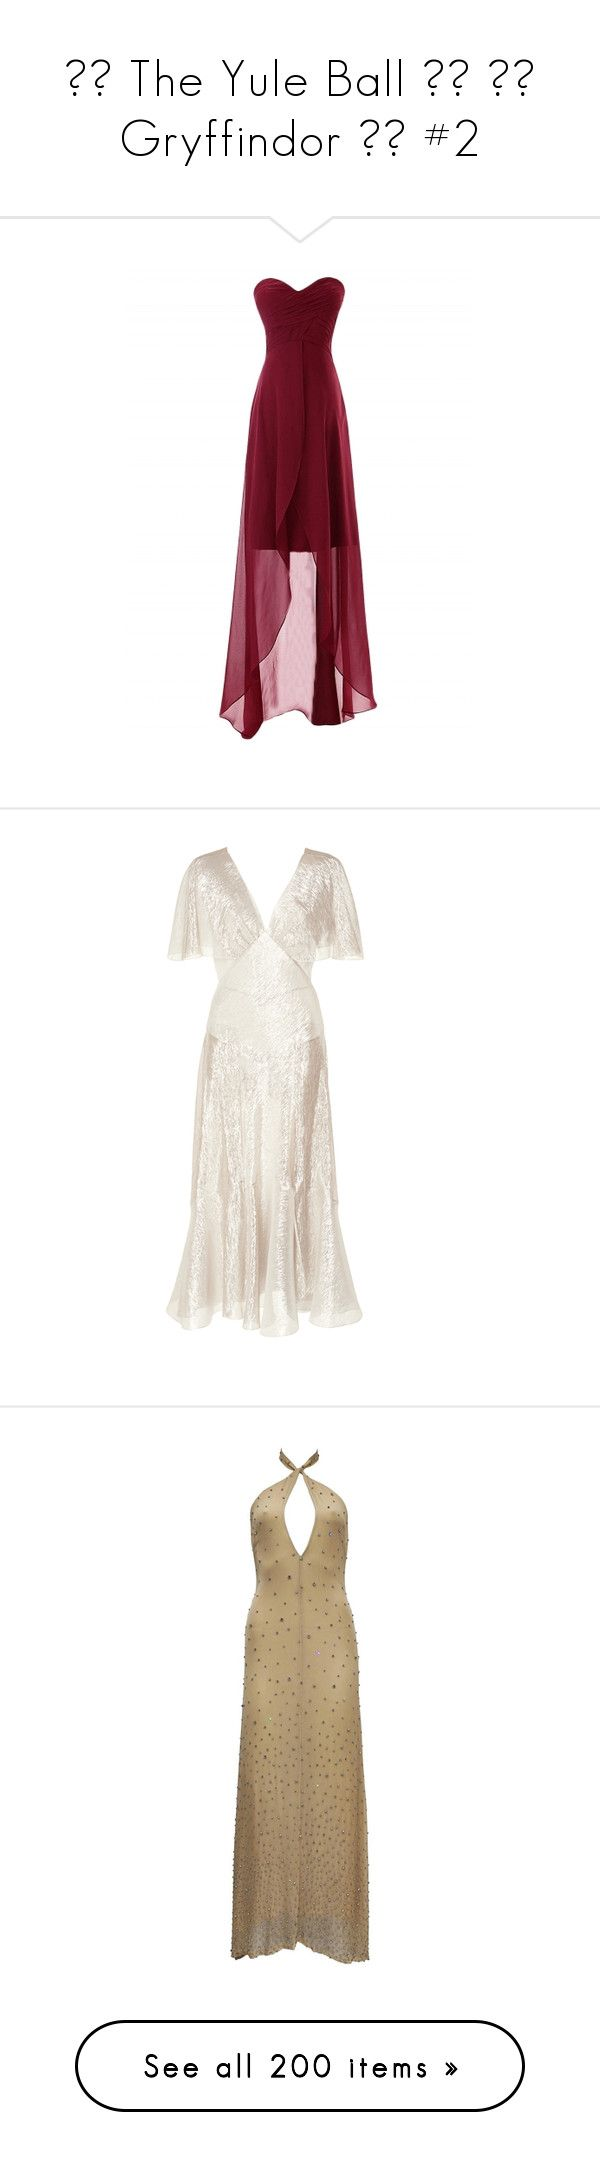 """""""❄️ The Yule Ball ❄️ ❤️ Gryffindor ❤️ #2"""" by moon-crystal-wolf ❤ liked on Polyvore featuring dresses, hi lo prom dresses, slimming cocktail dresses, holiday party dresses, cocktail dresses, prom dresses, neutral, v-neck dresses, white short sleeve dress and white dress"""